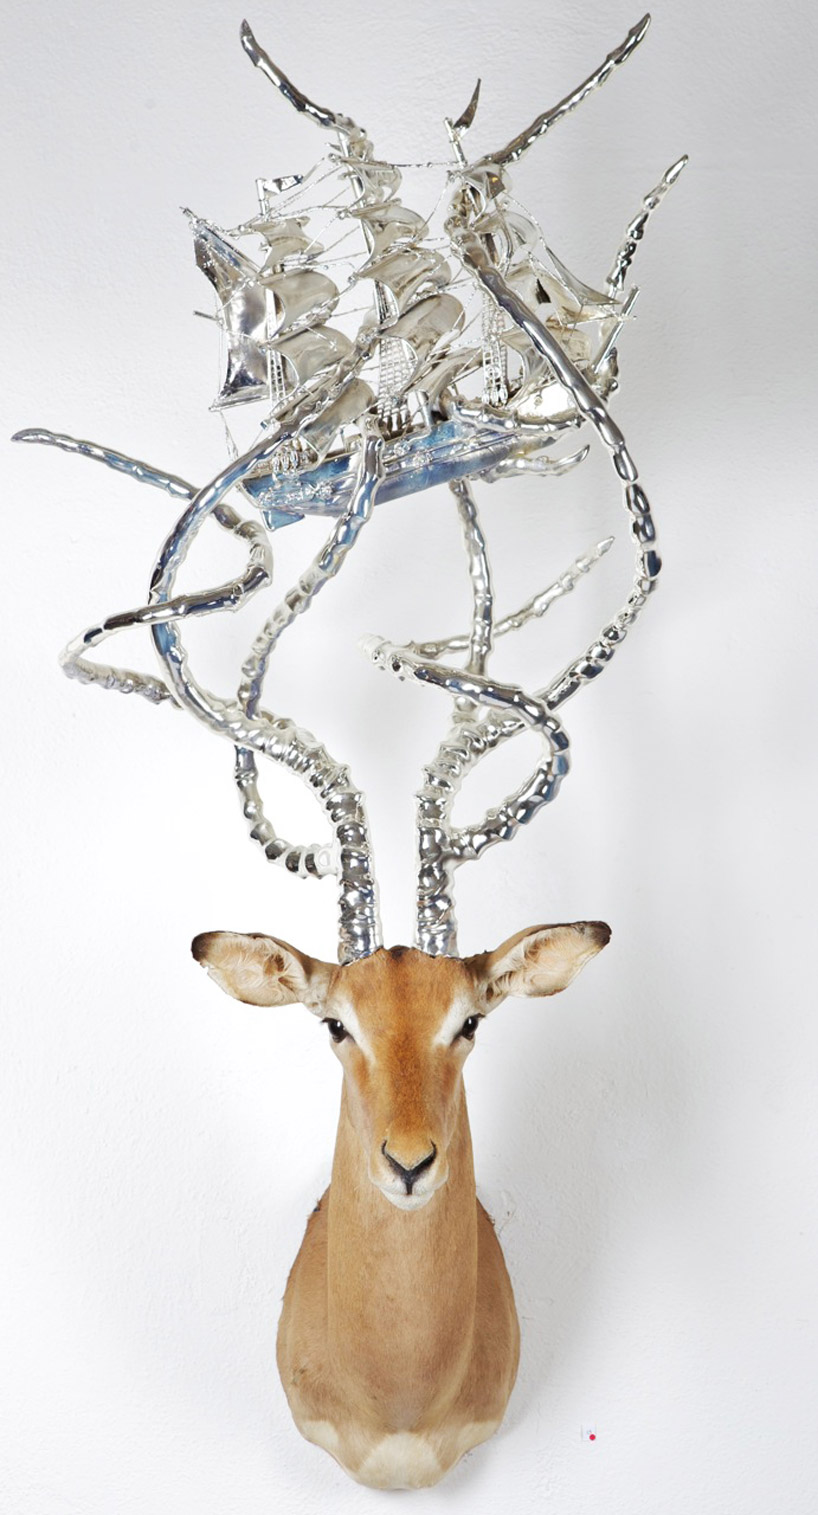 gronquist12 Unique Taxidermy Sculptures by Peter Gronquist